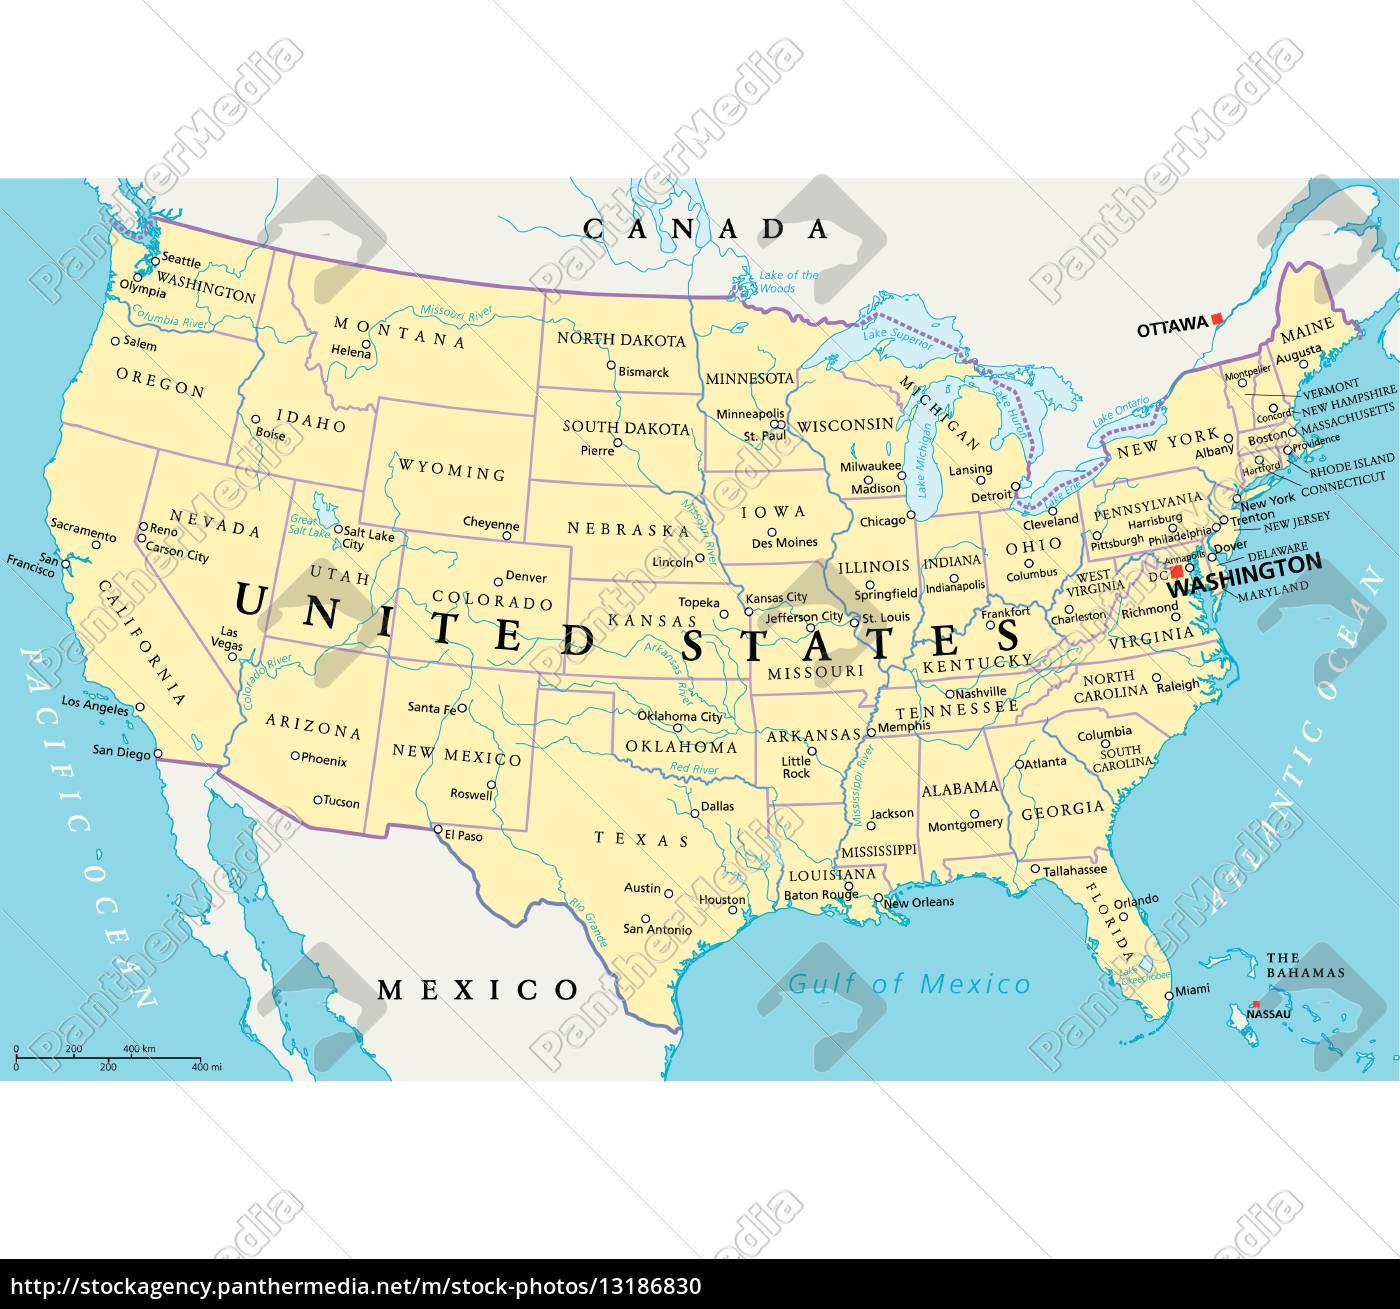 United States Of America Political Map Royalty Free Image